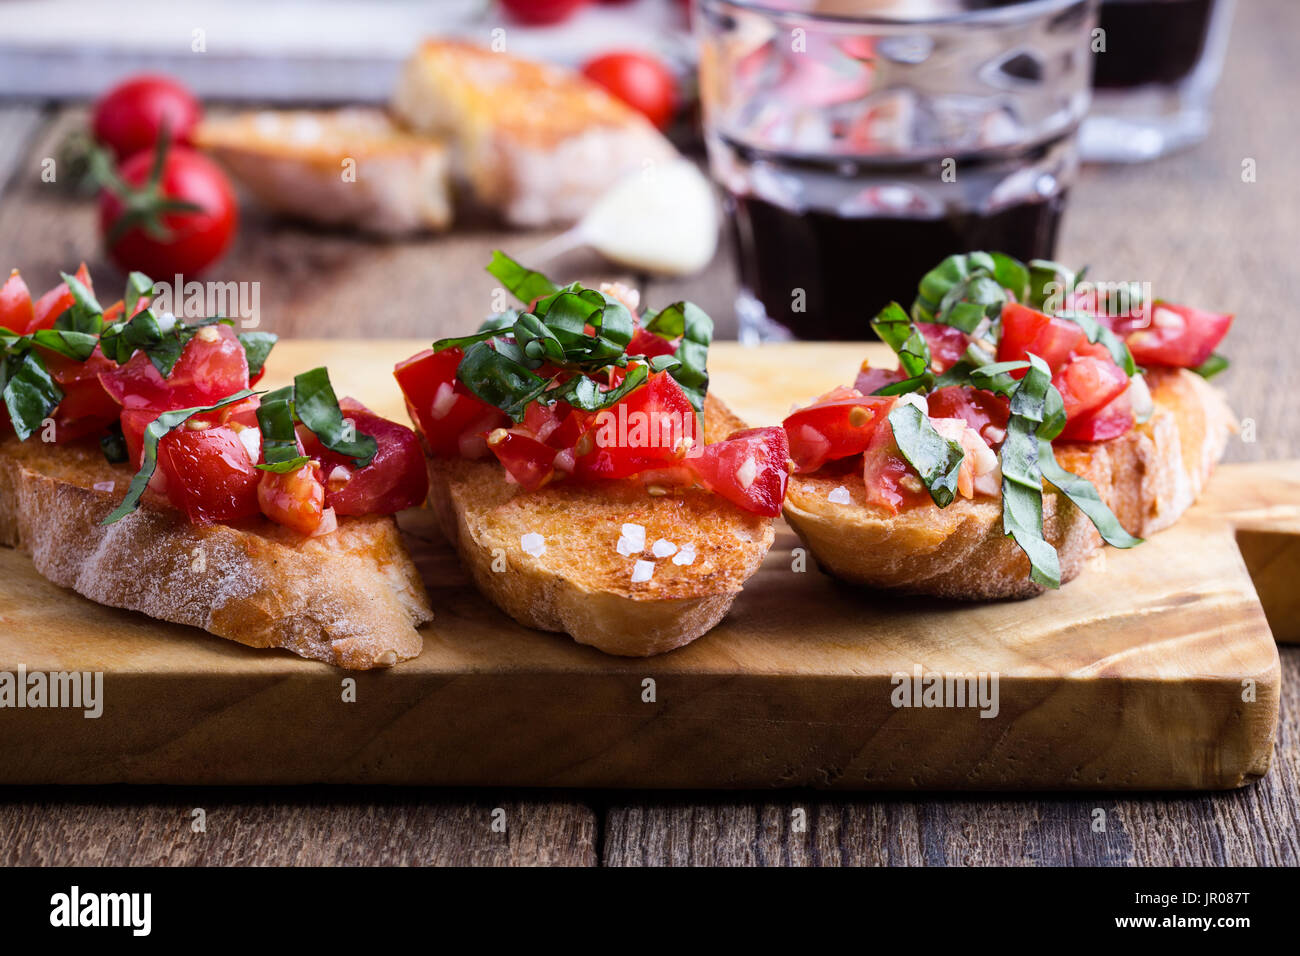 Tomato and basil bruschetta with toasted garlic bread, traditional Italian appetizer on rustic wooden cutting board - Stock Image